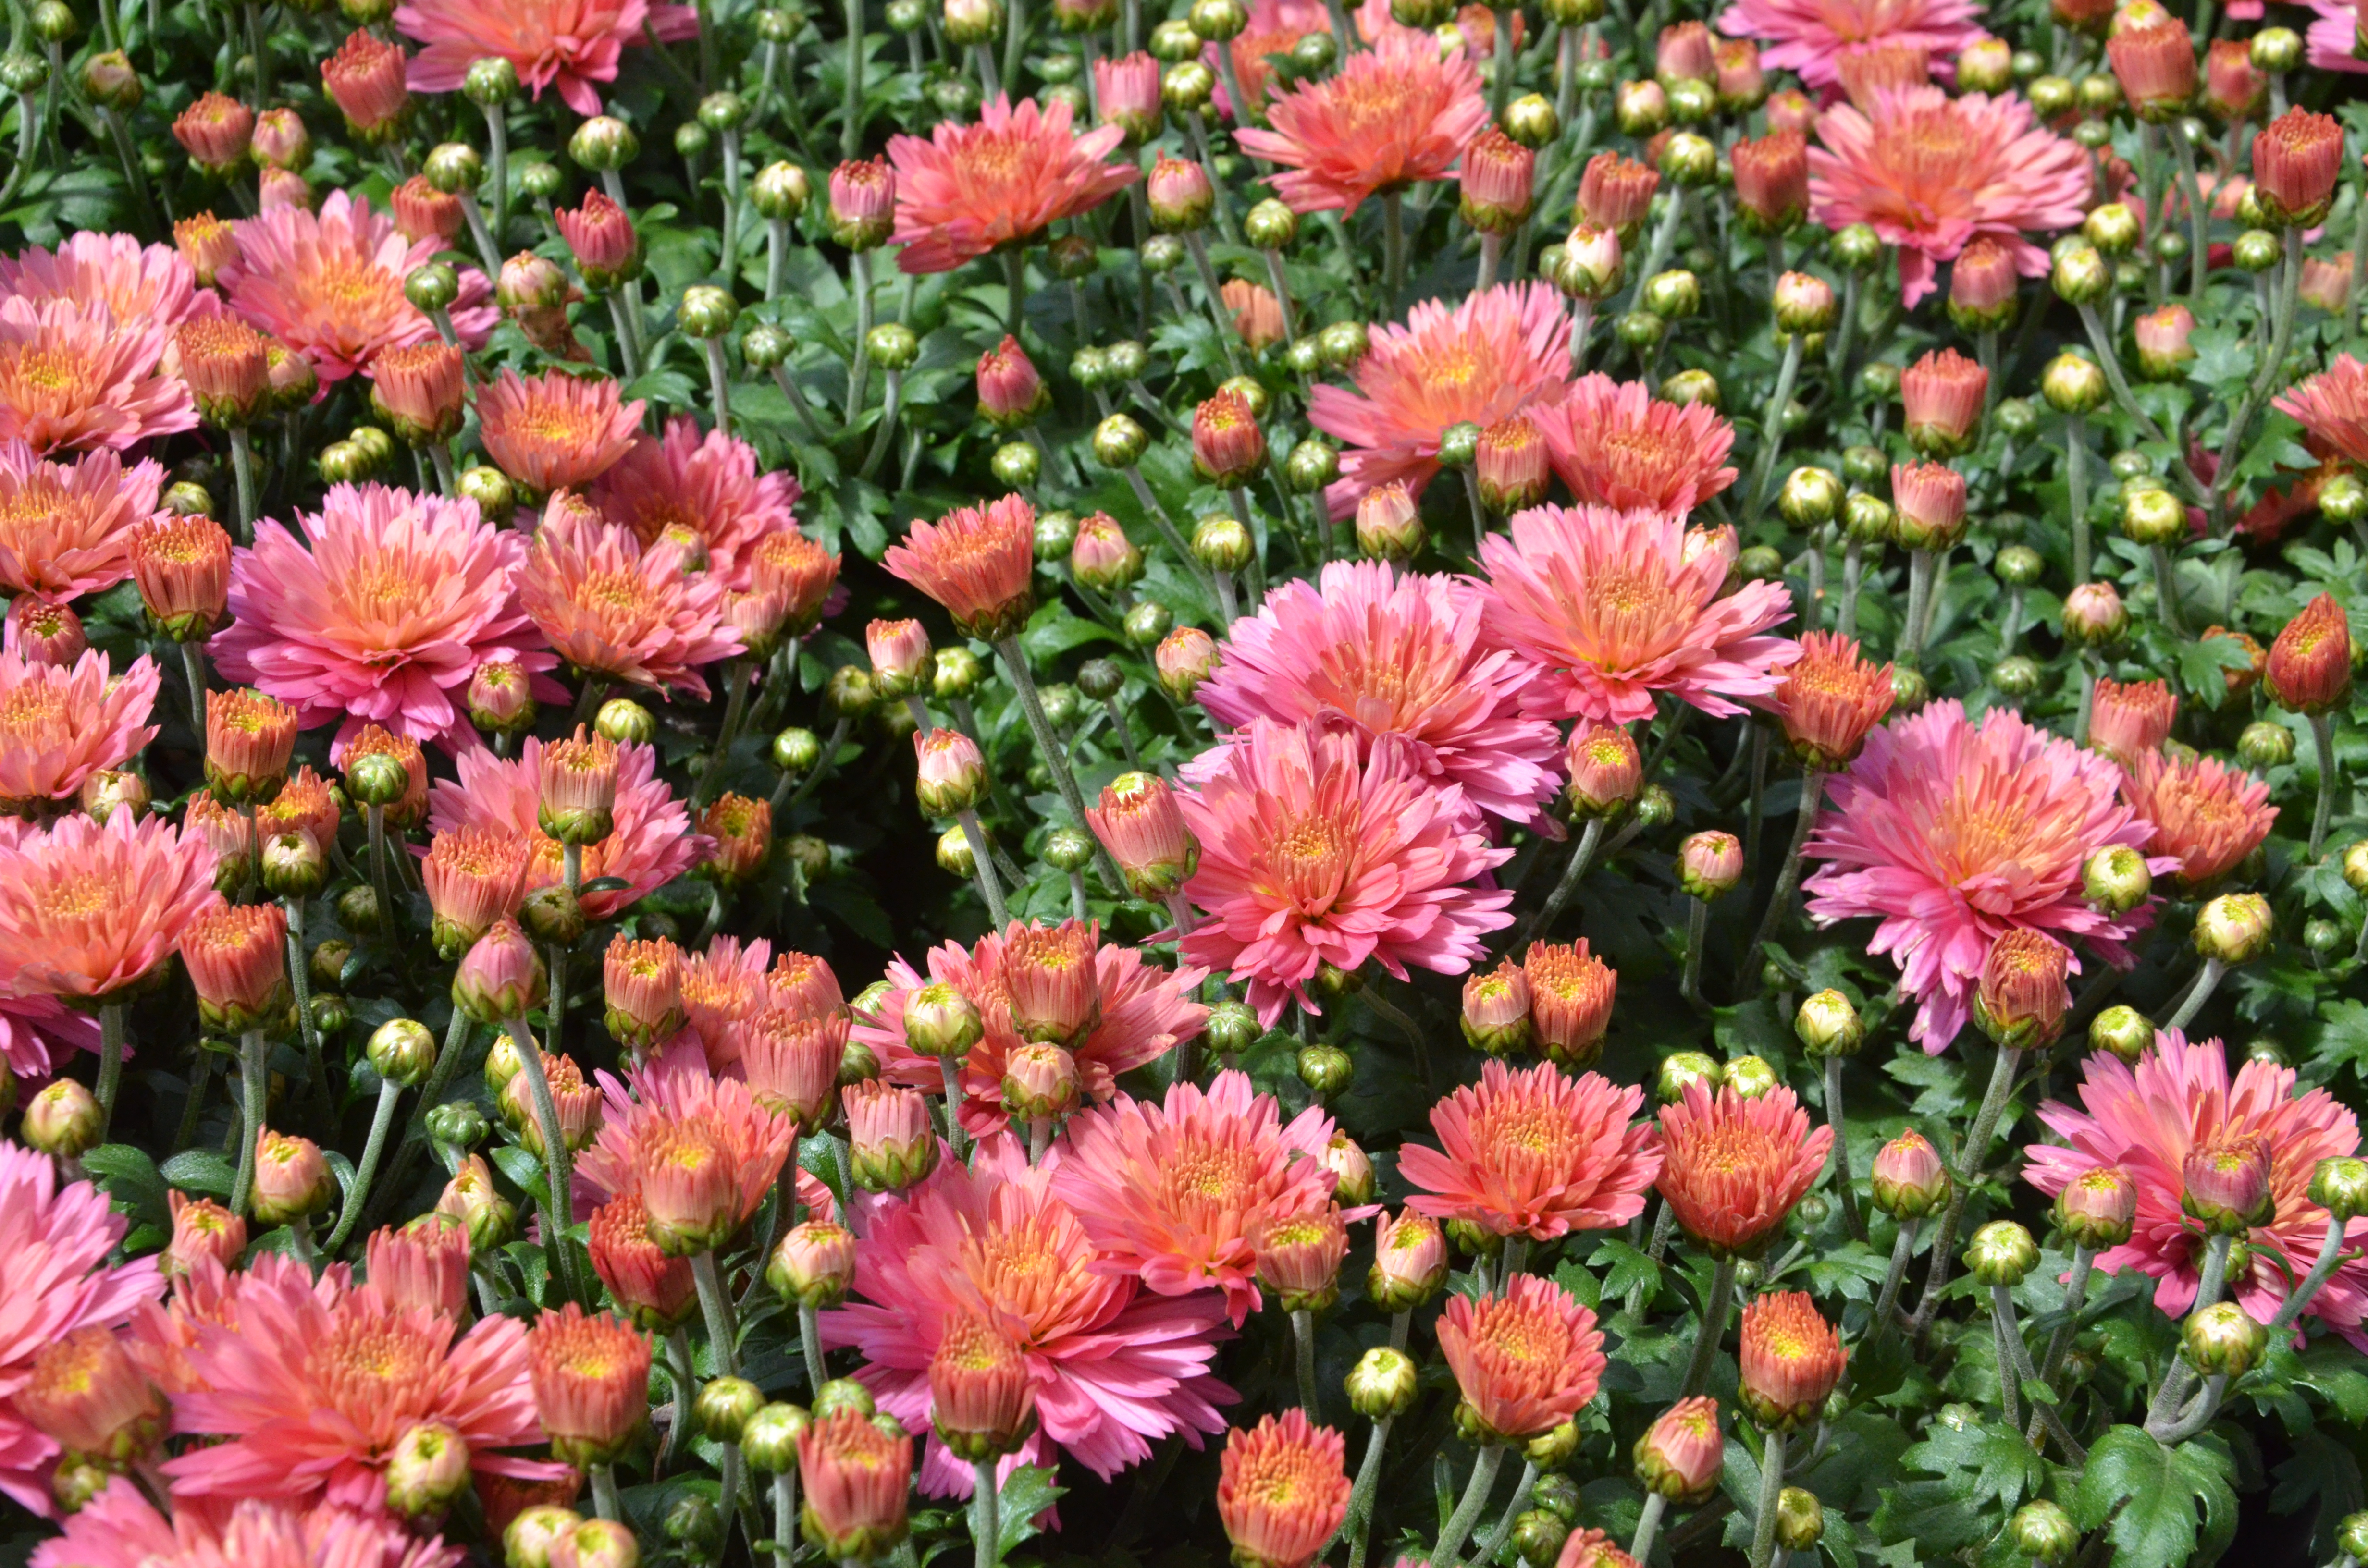 Fall blooming flowers take root with dennis 39 7 dees - Fall blooming flowers ...